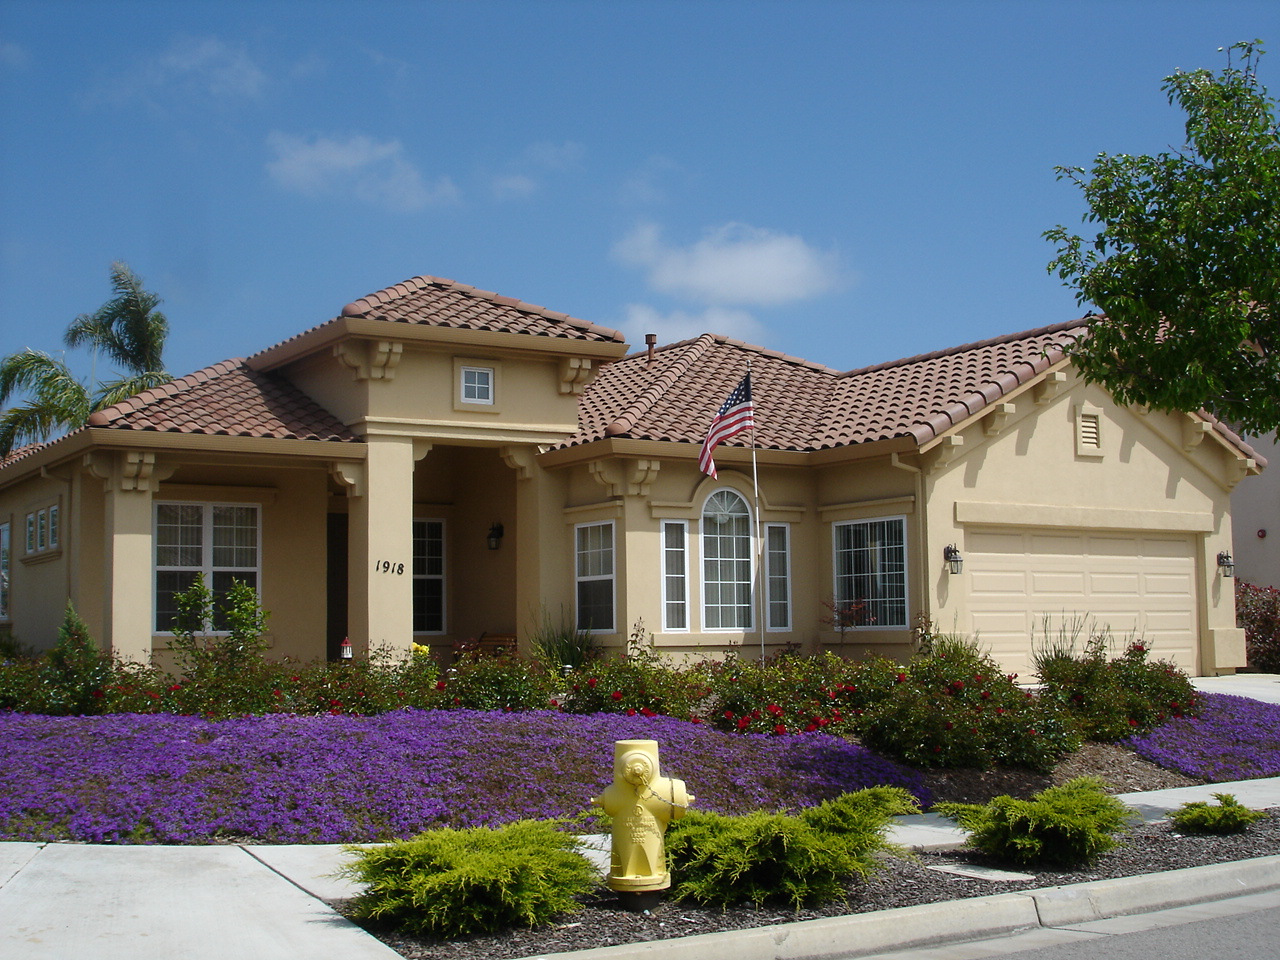 File ranch style home in salinas california jpg wikimedia commons - Ca home design ideas ...